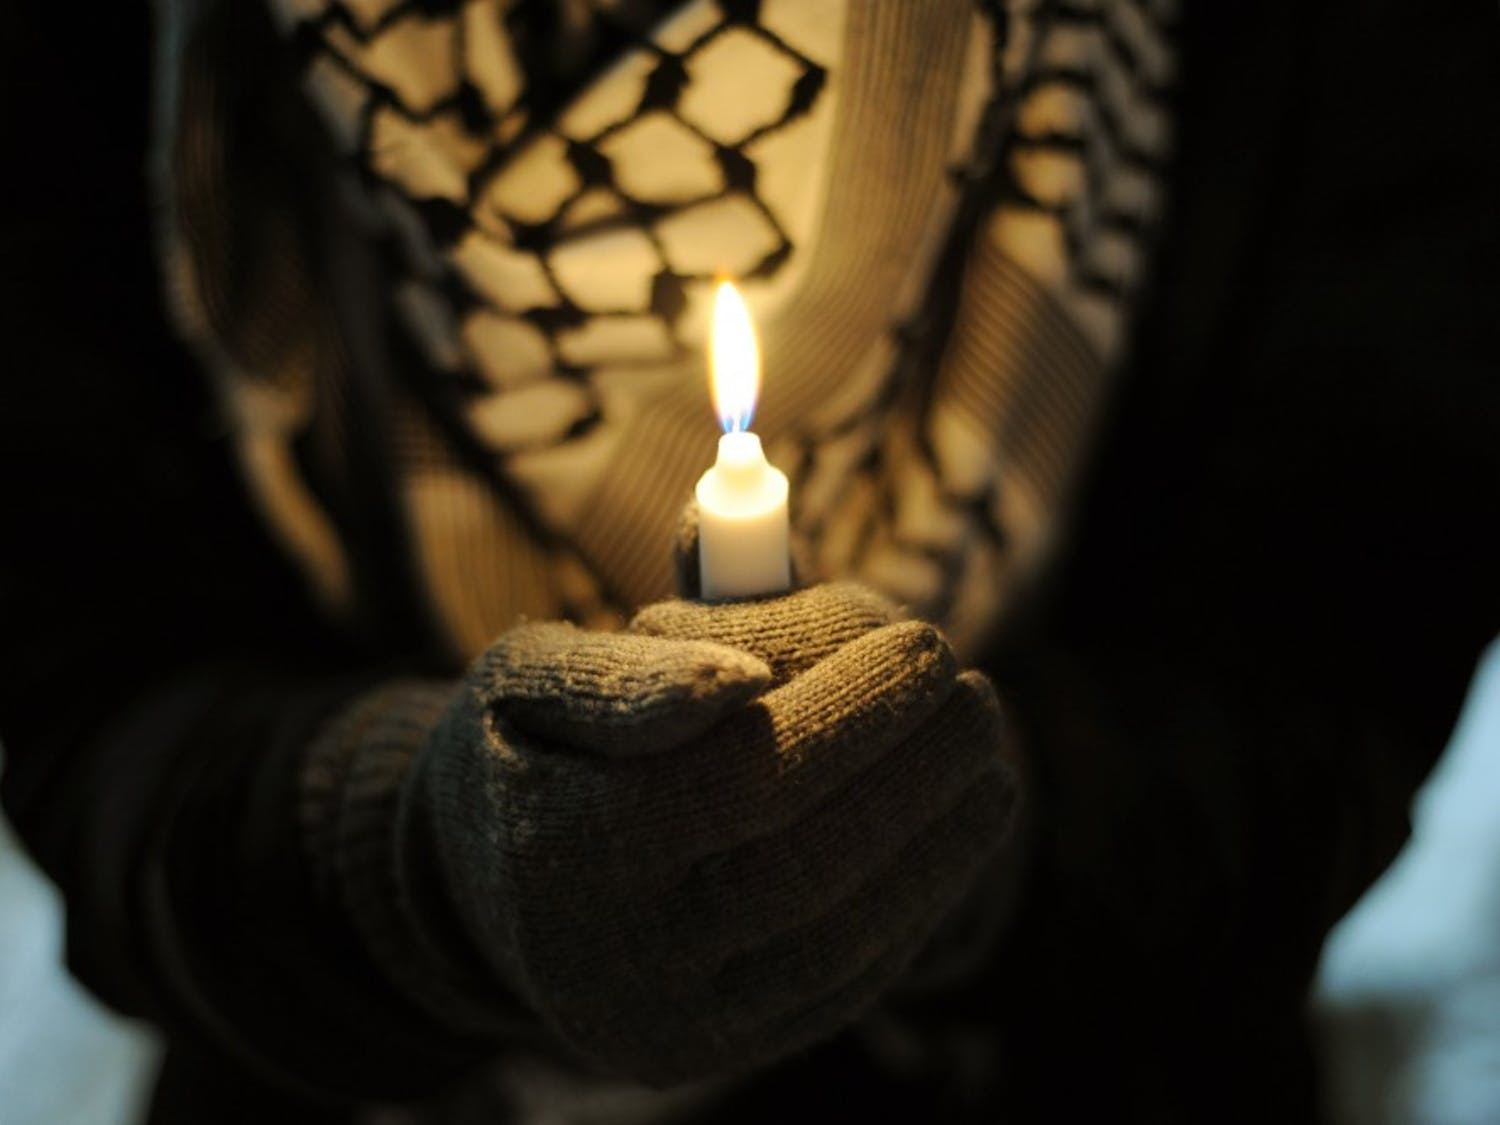 UB students honor Muslim students fatally shot in Chapel Hill with candlelight vigil.